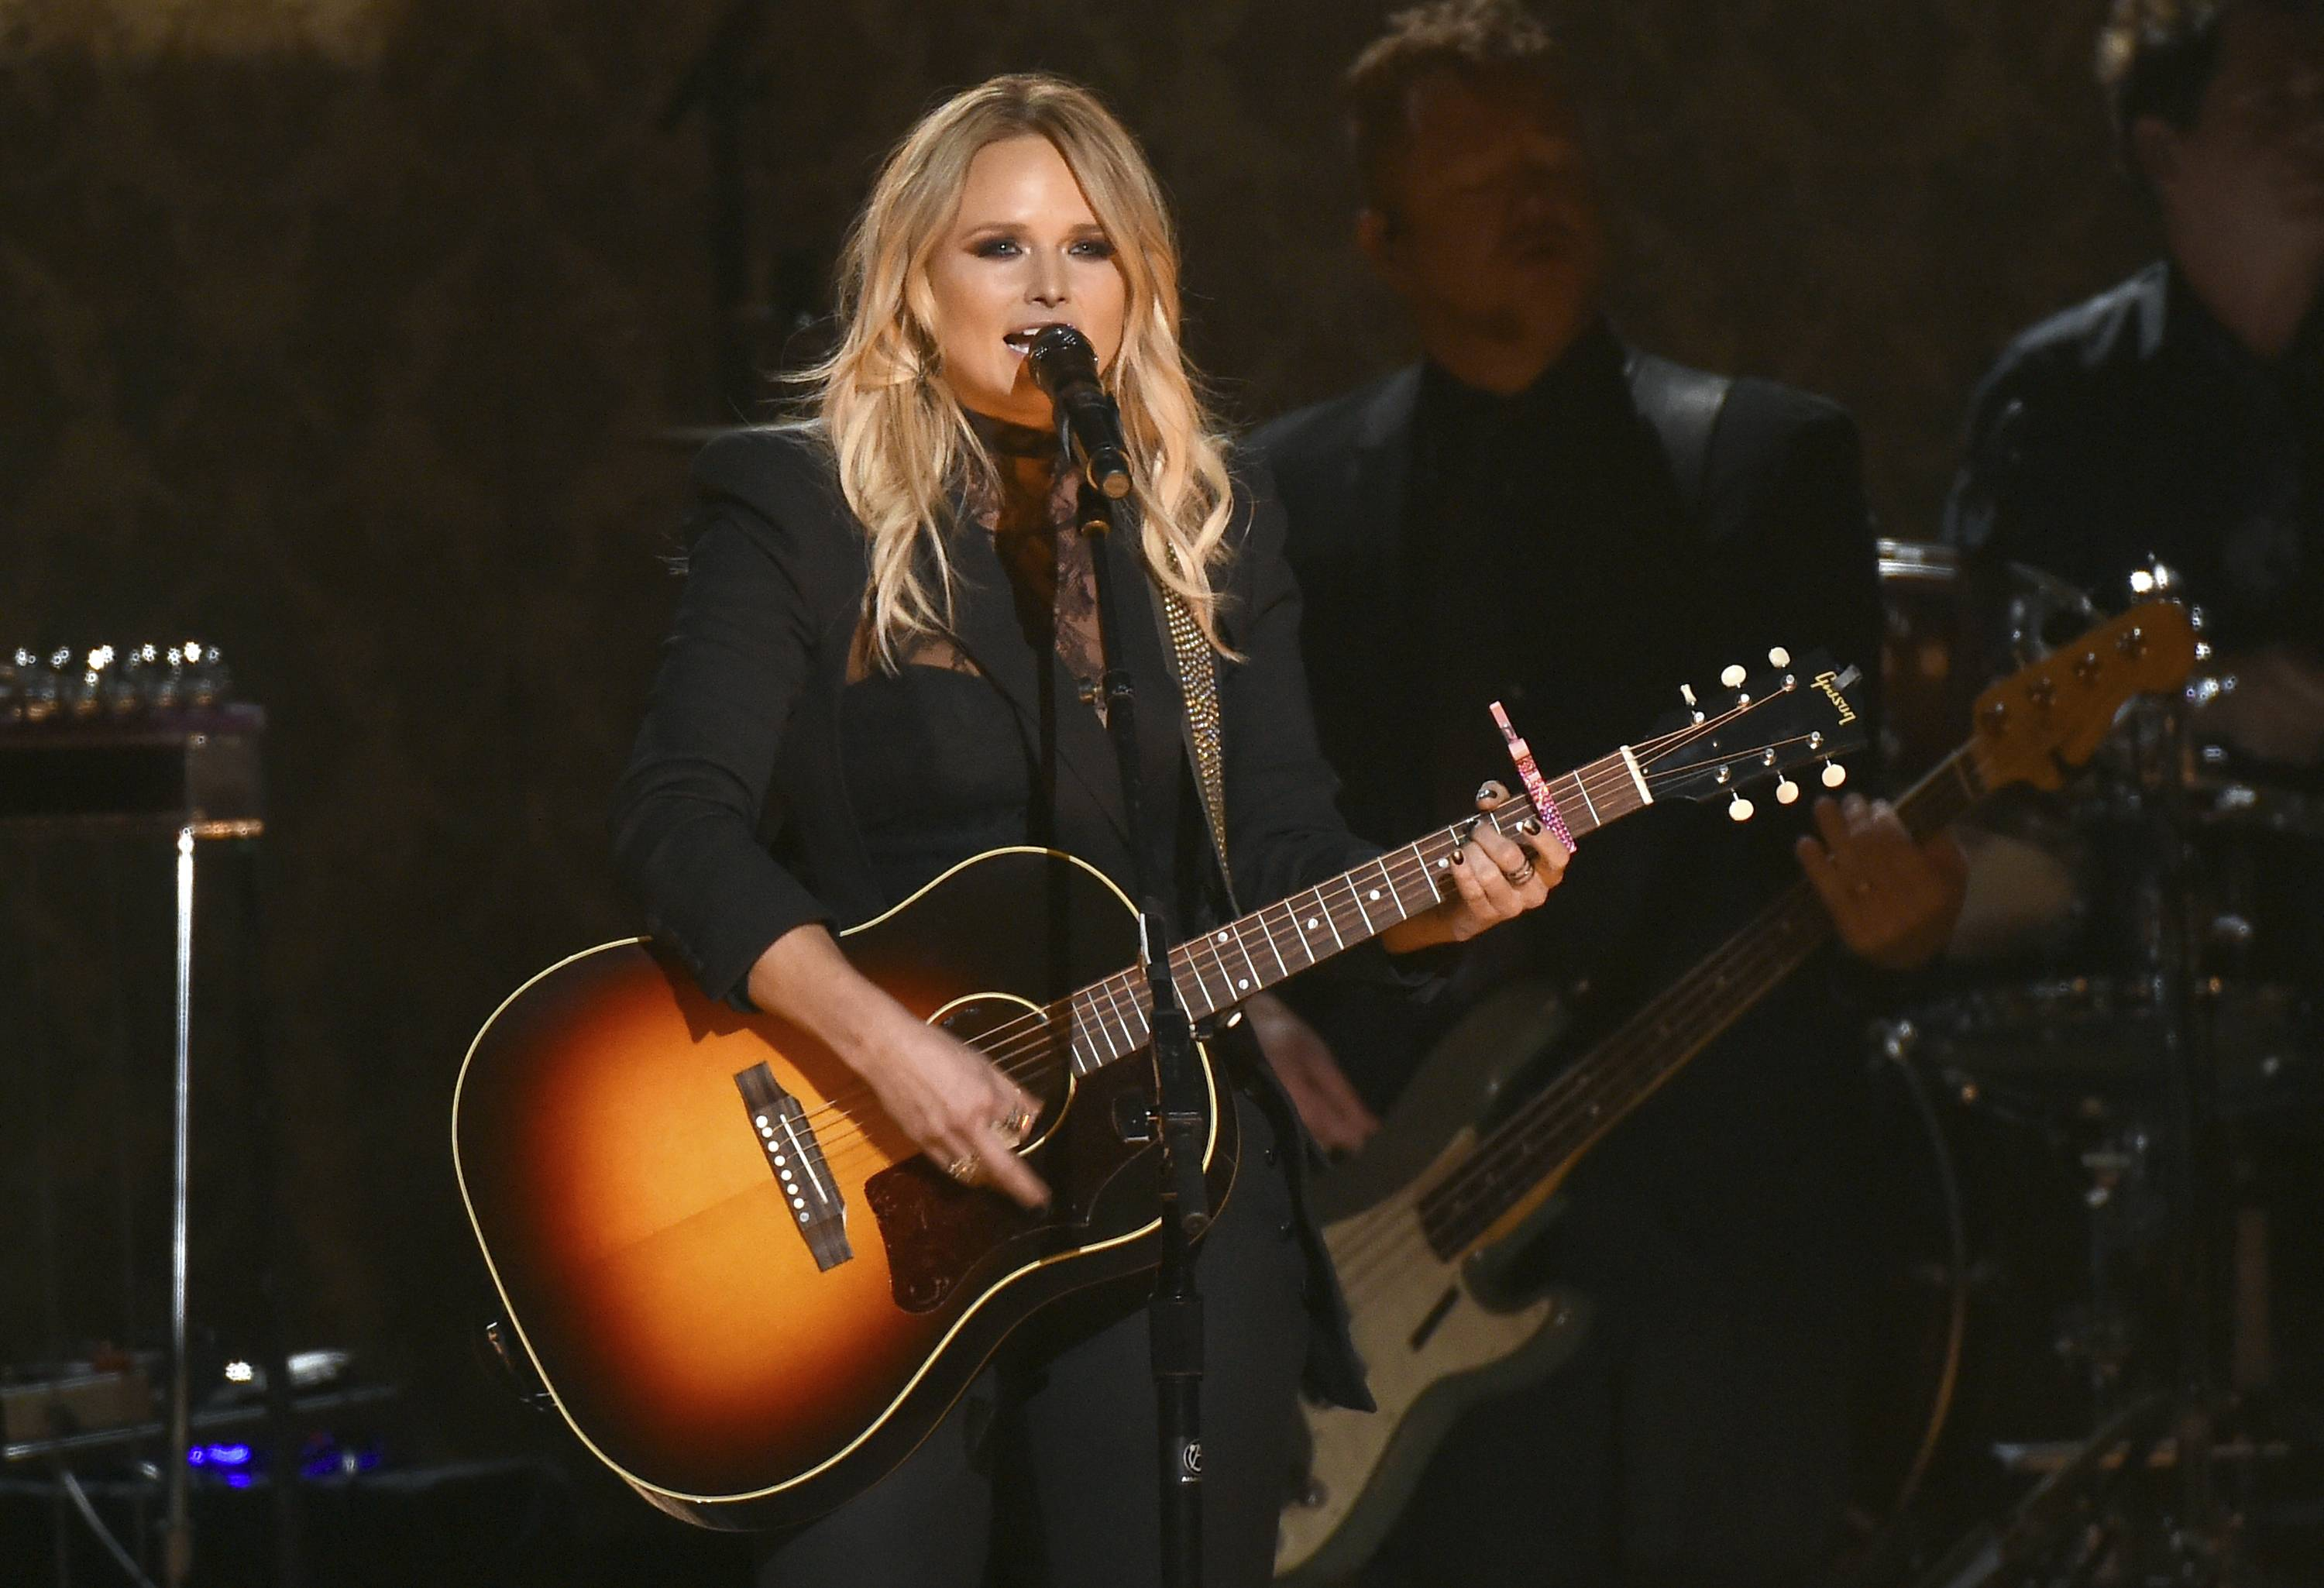 Miranda Lambert appears as part of the Country LakeShake music festival at Huntington Bank Pavilion at Northerly Island in Chicago.